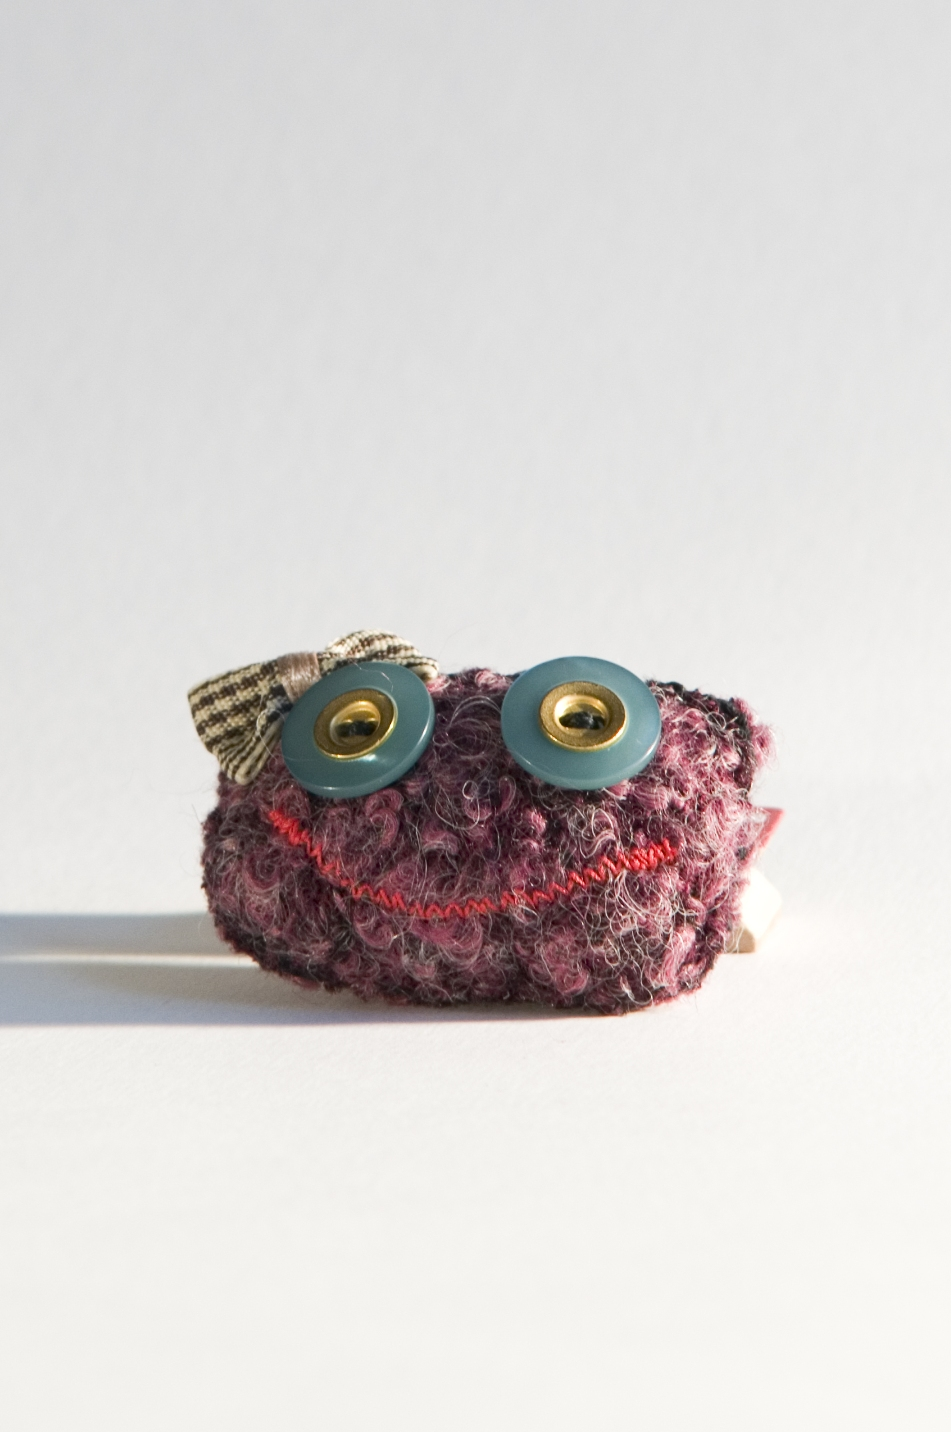 Spooky Monster Brooche